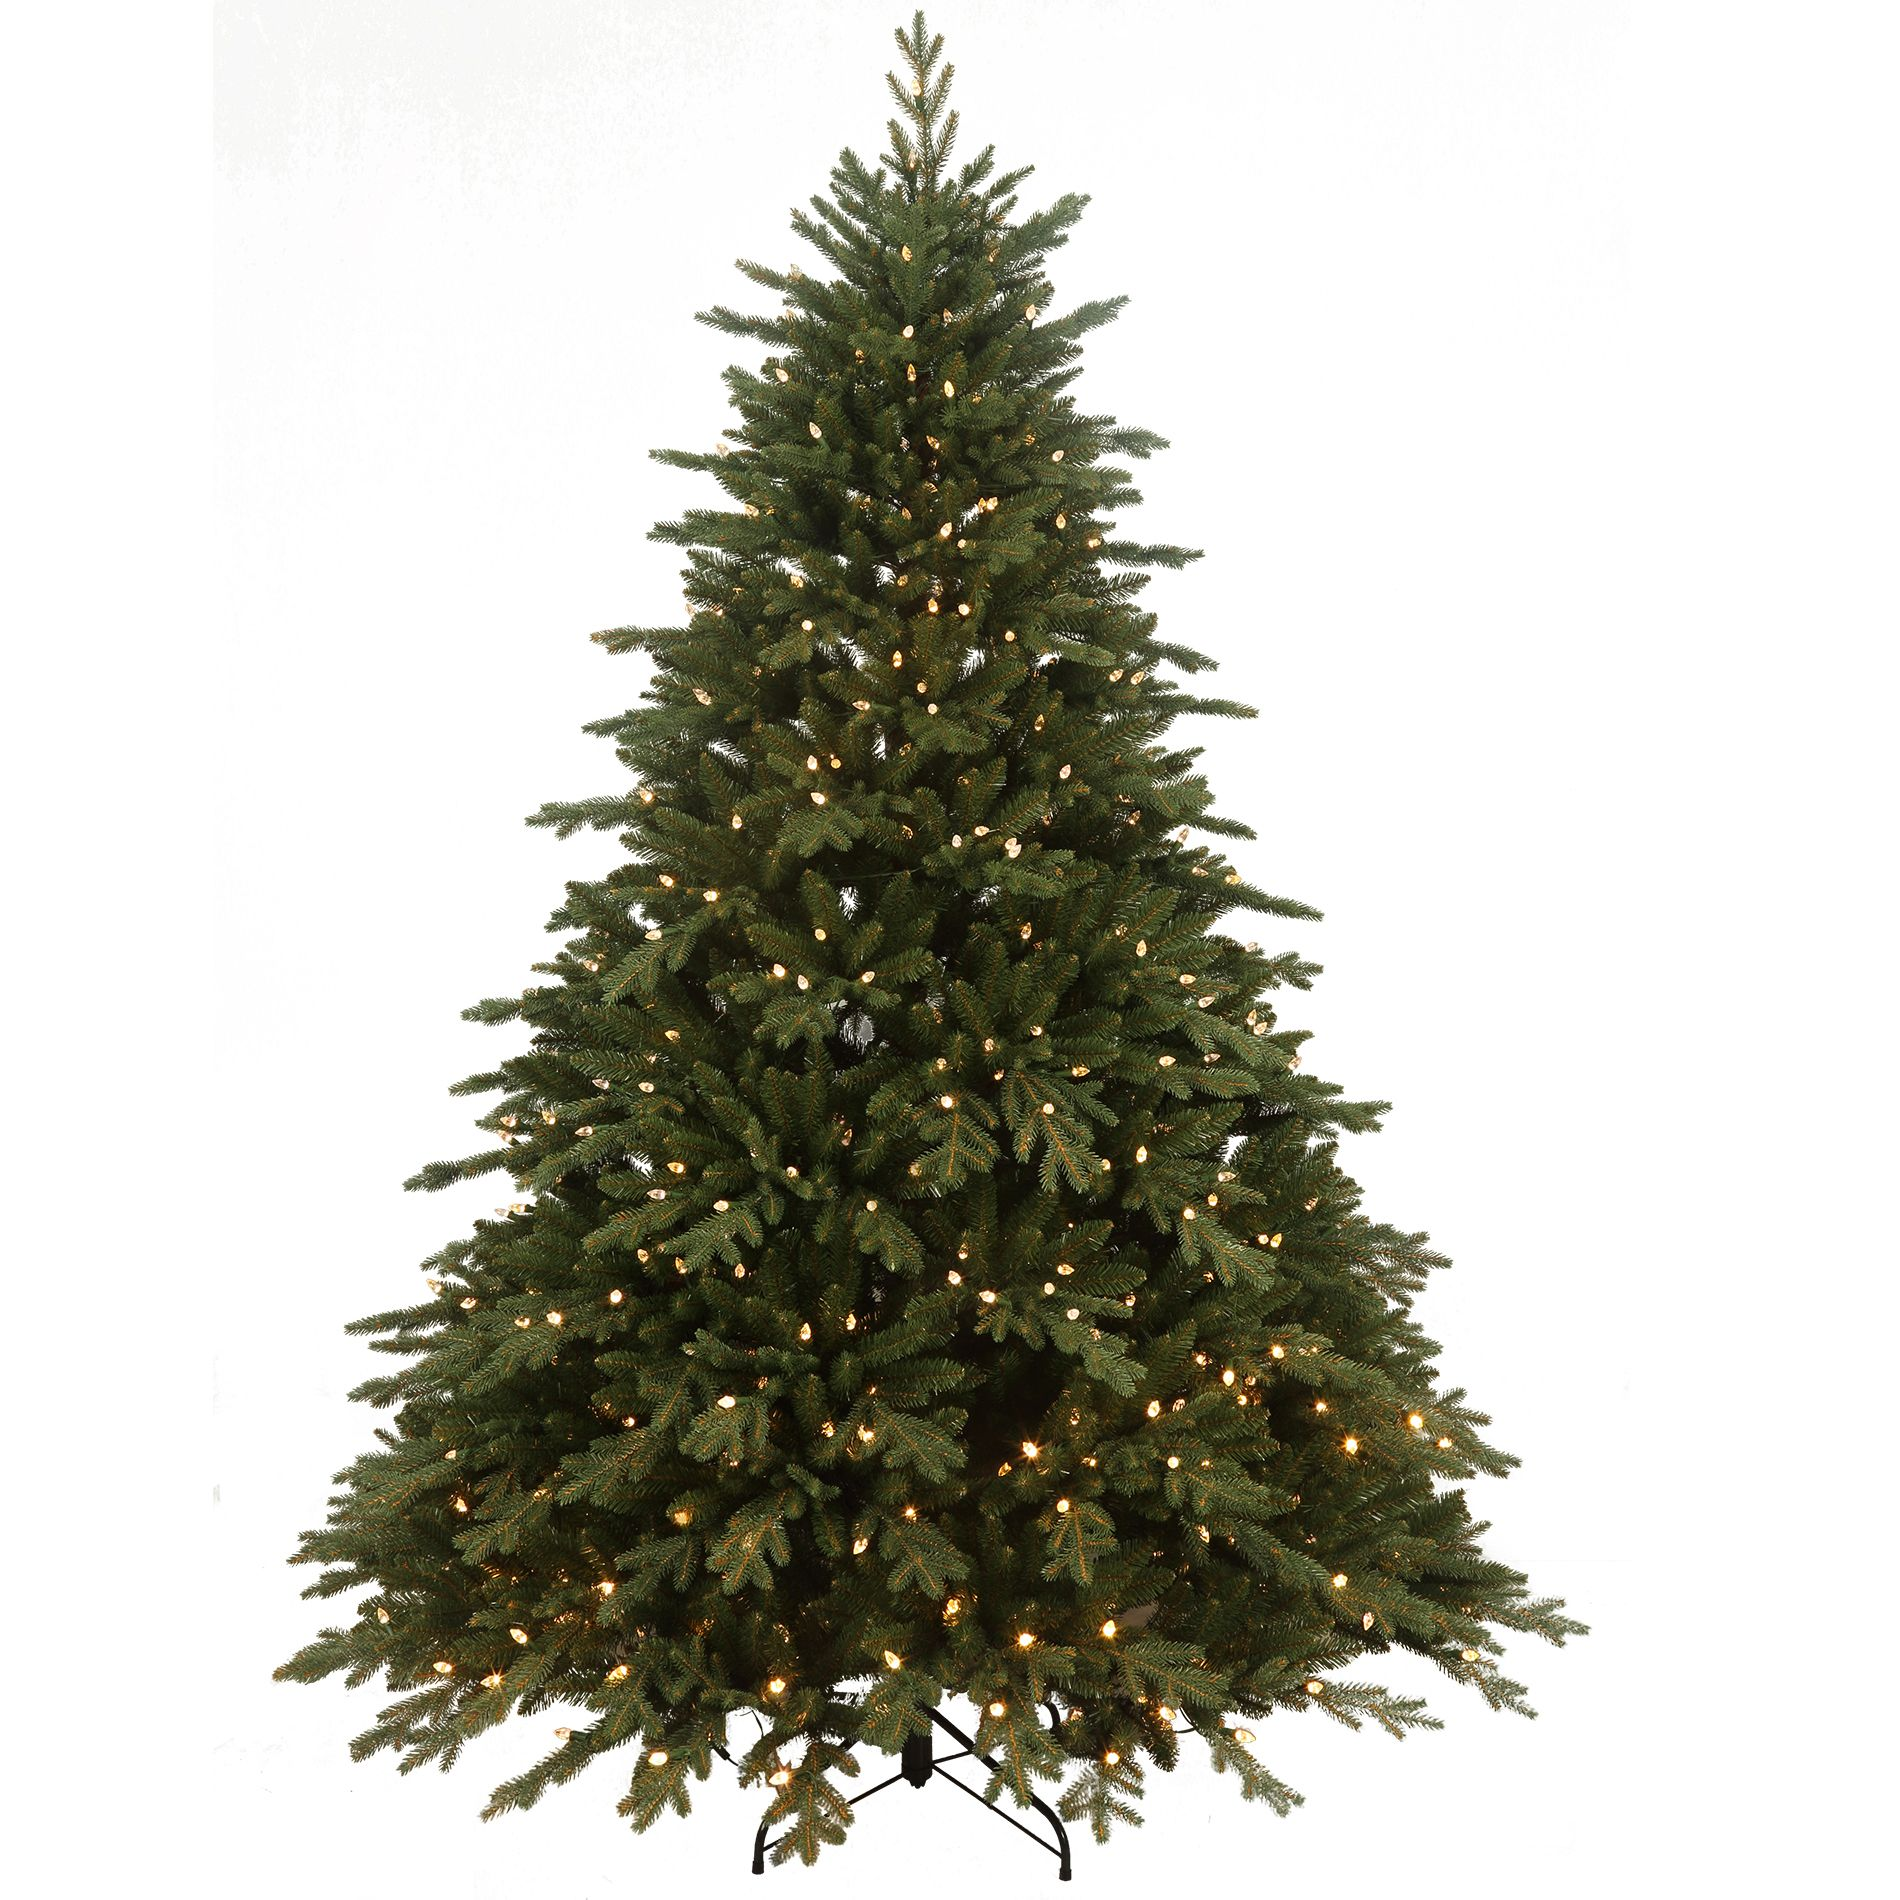 xmas tree sears roebuck and co 75 norwegian spruce with 800 dual color led lights 225